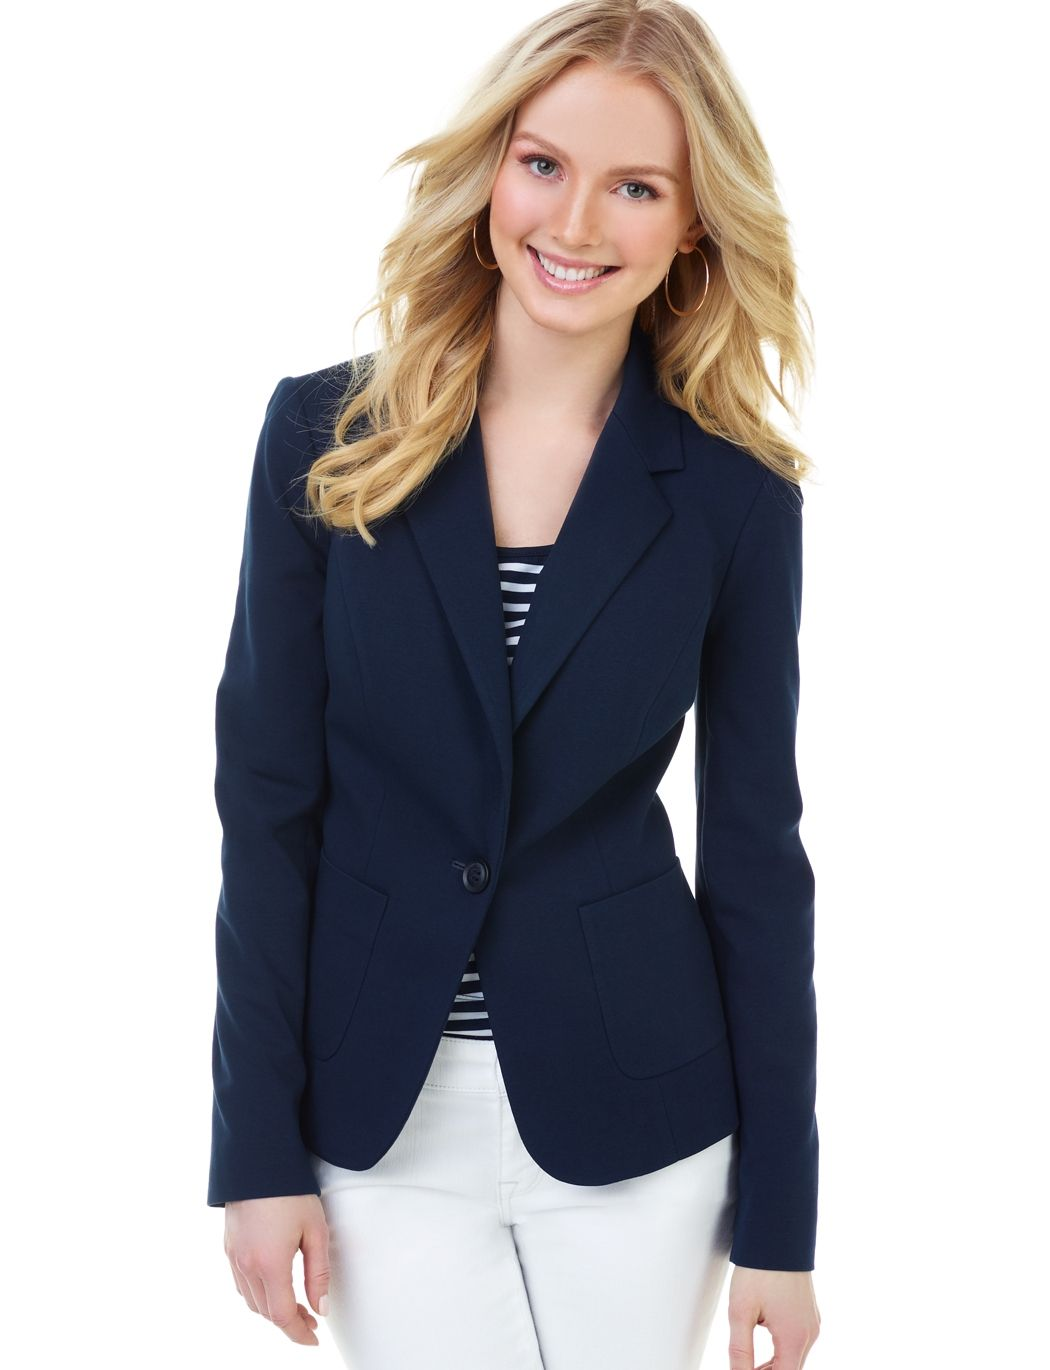 Jackets for Women: One-button Blazer: The Limited | My style - for ...